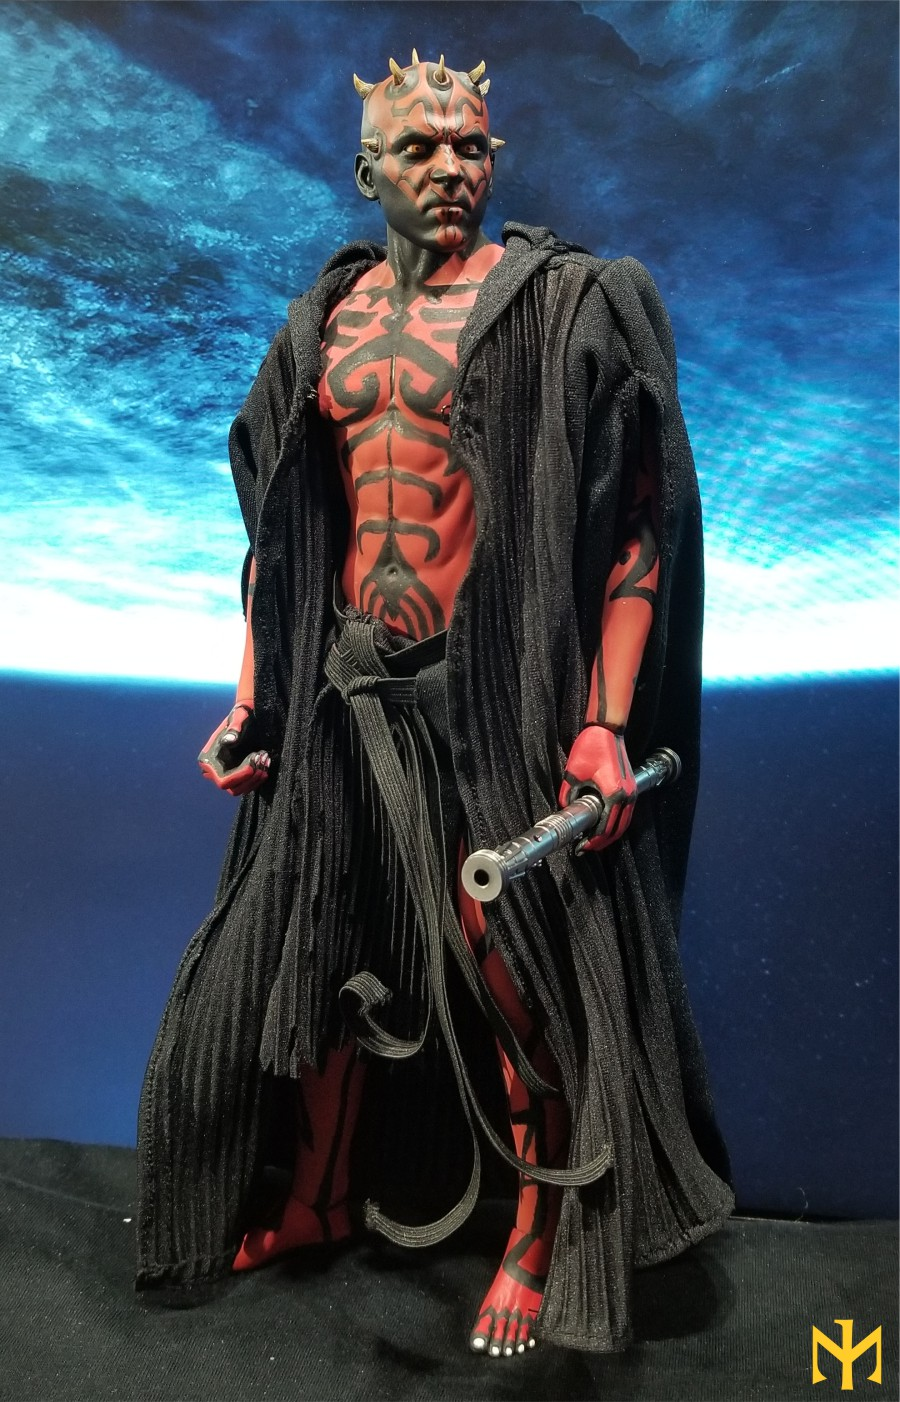 STAR WARS Updated Darth Maul Custom Part IV Maul 2.0 (photo heavy) Swdmt225